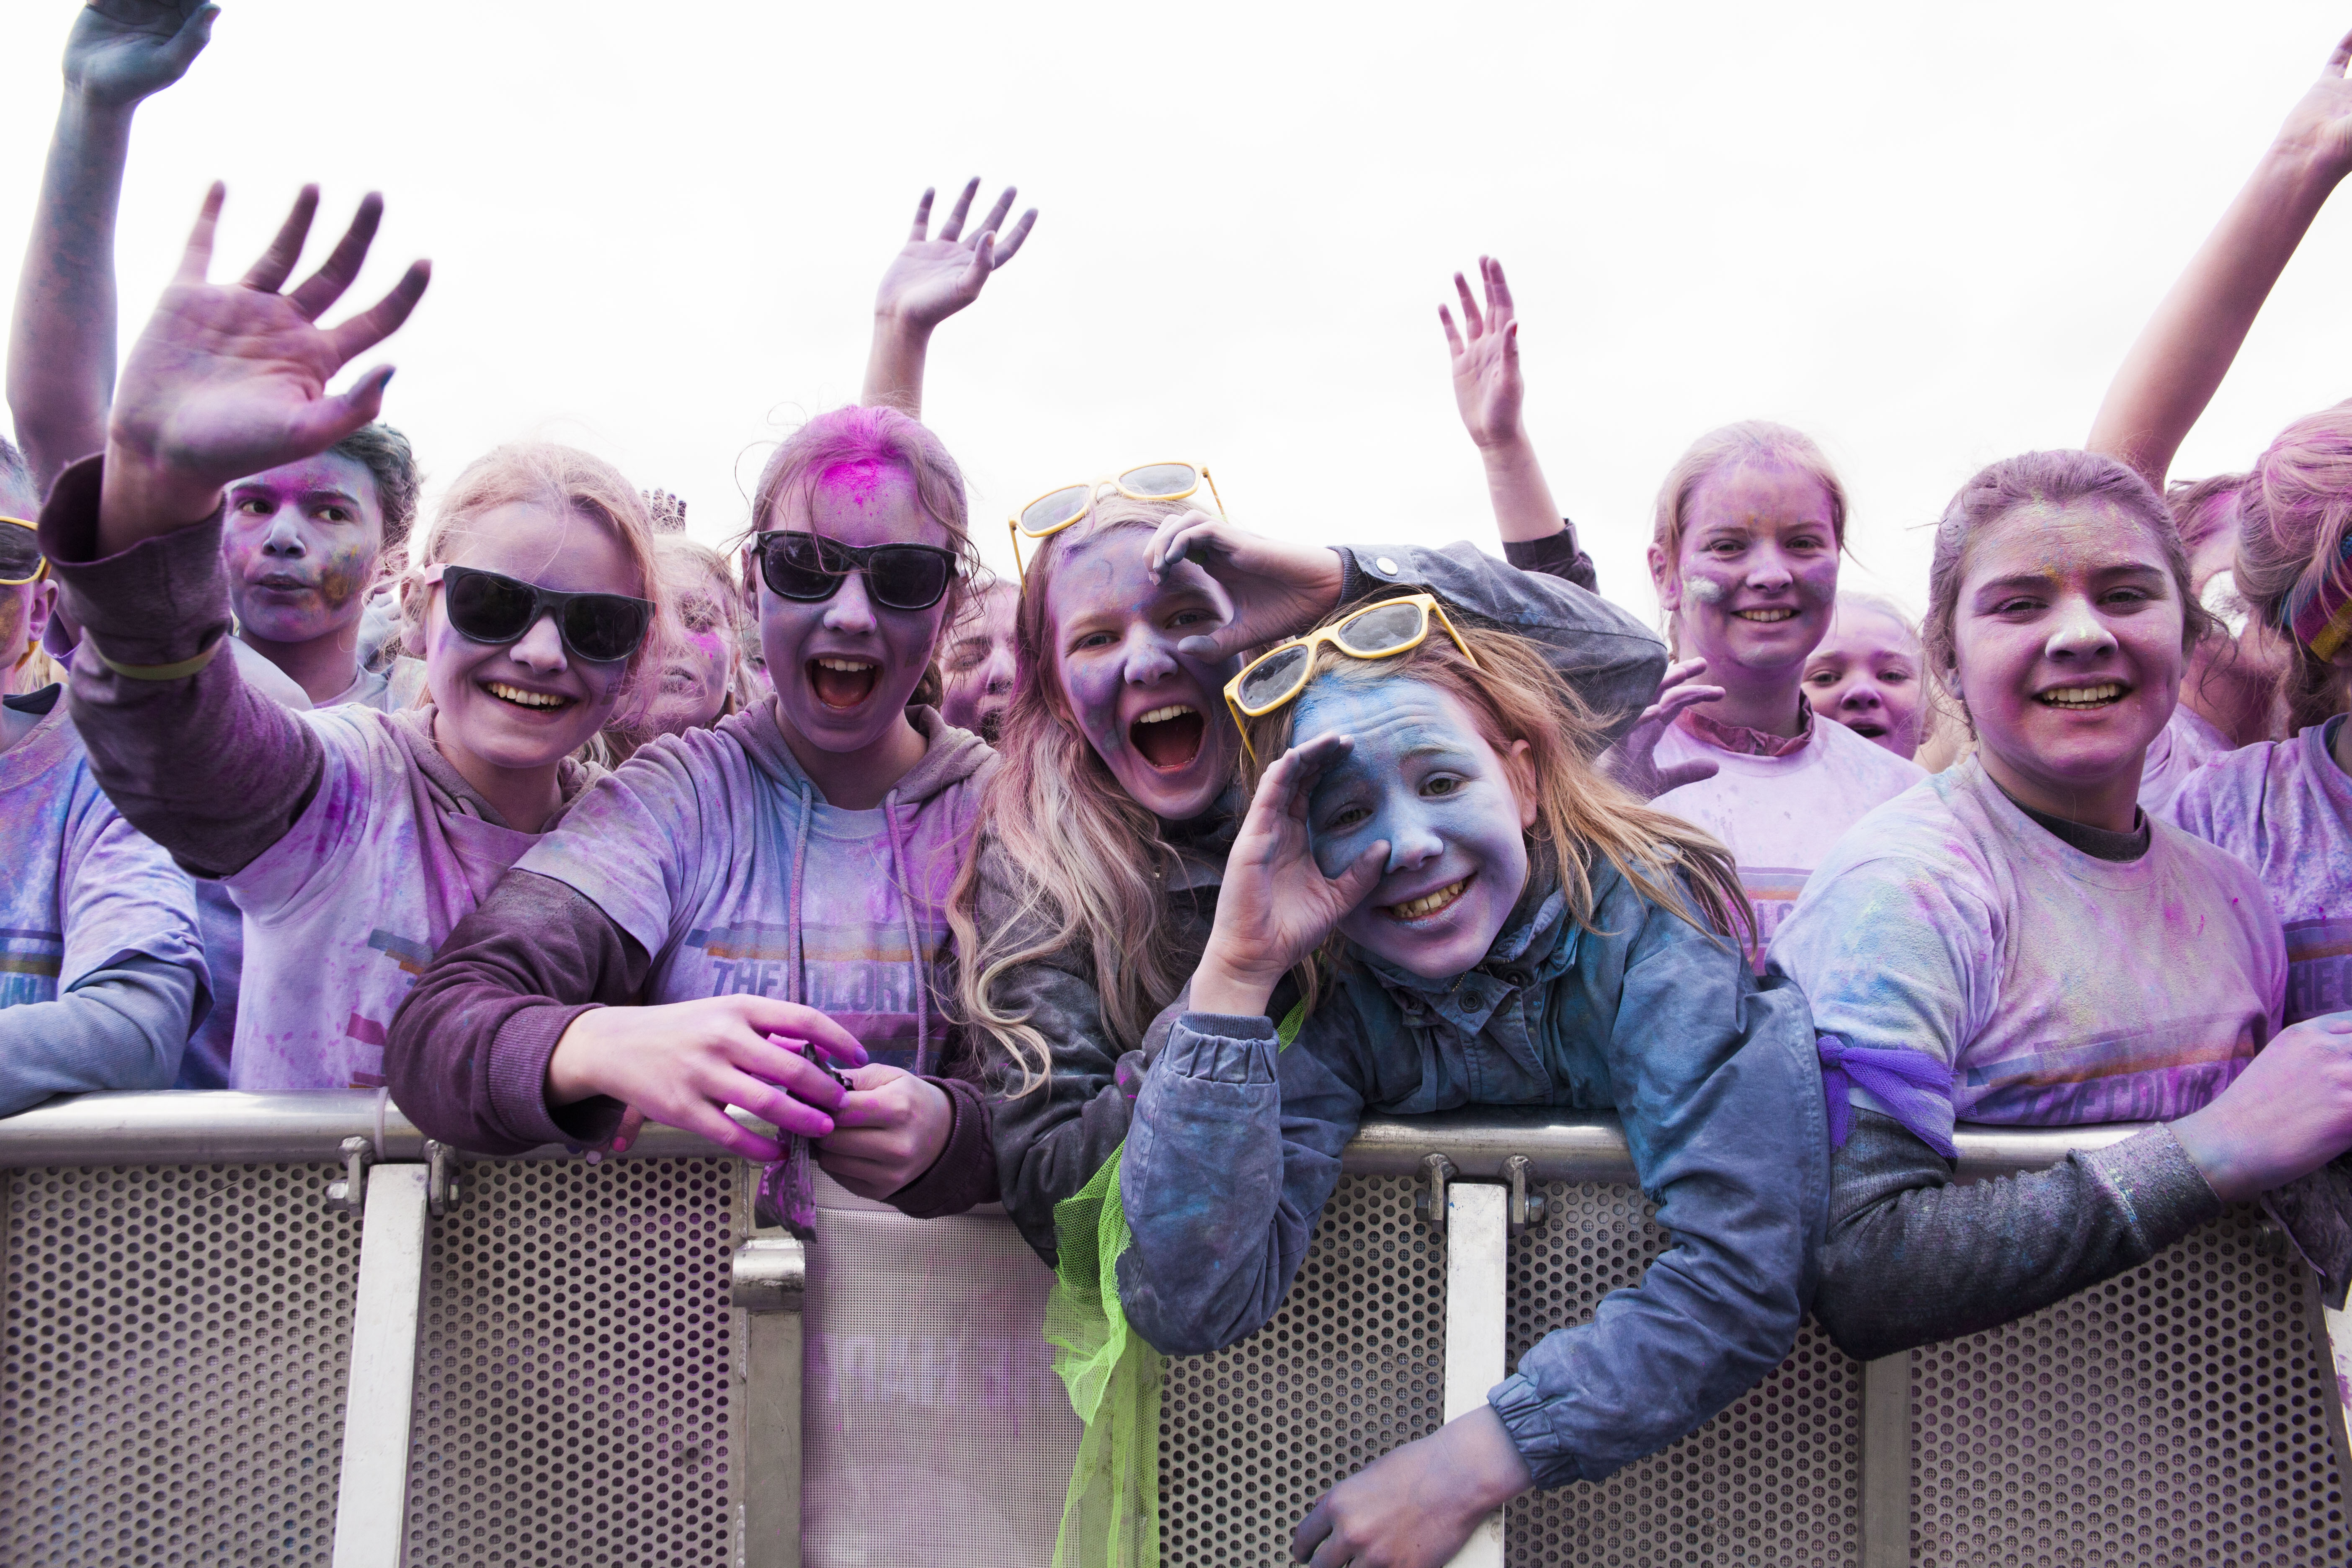 TheColorRun2015_HelenaLundquist_mindre_7